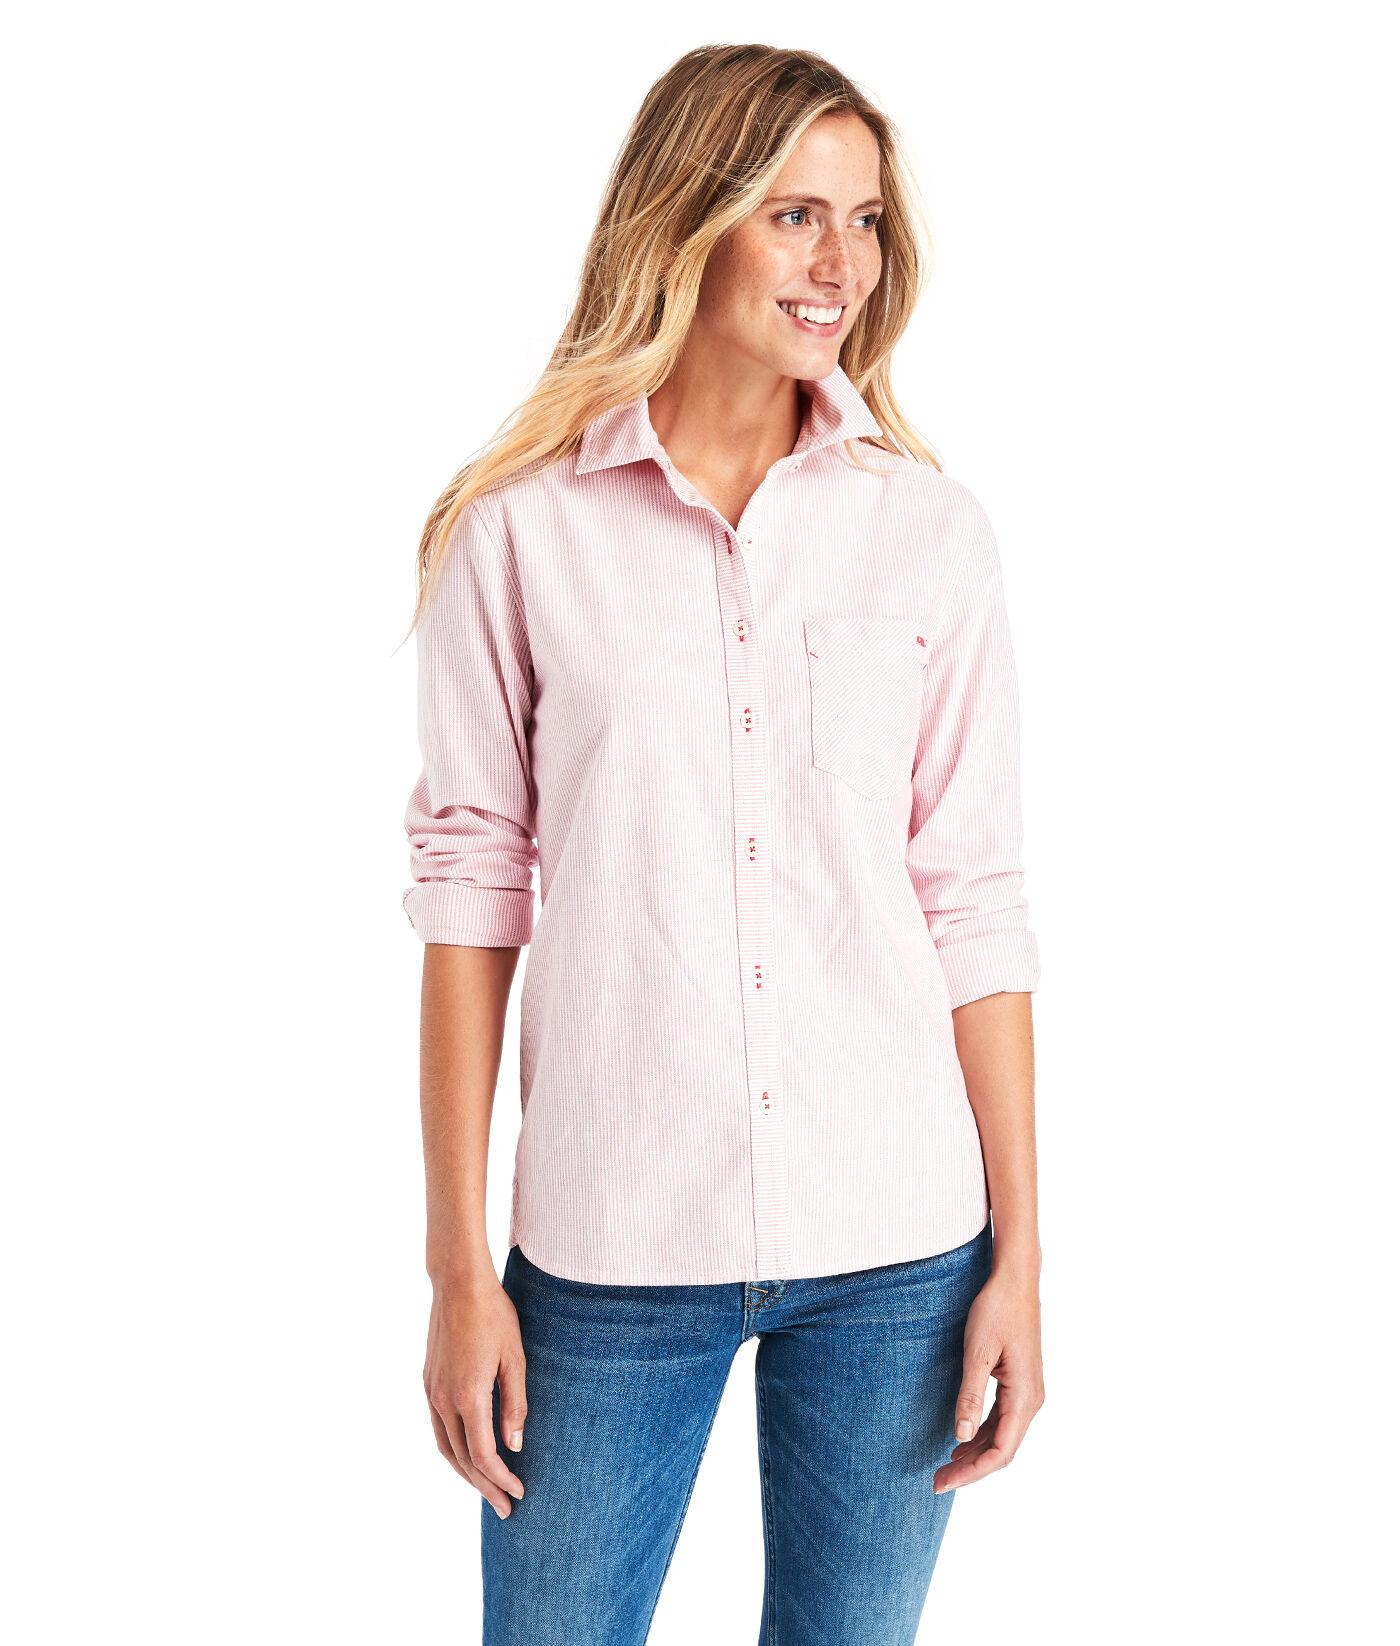 Vineyard Vines Cotton Chilmark Relaxed Oxford Button Down